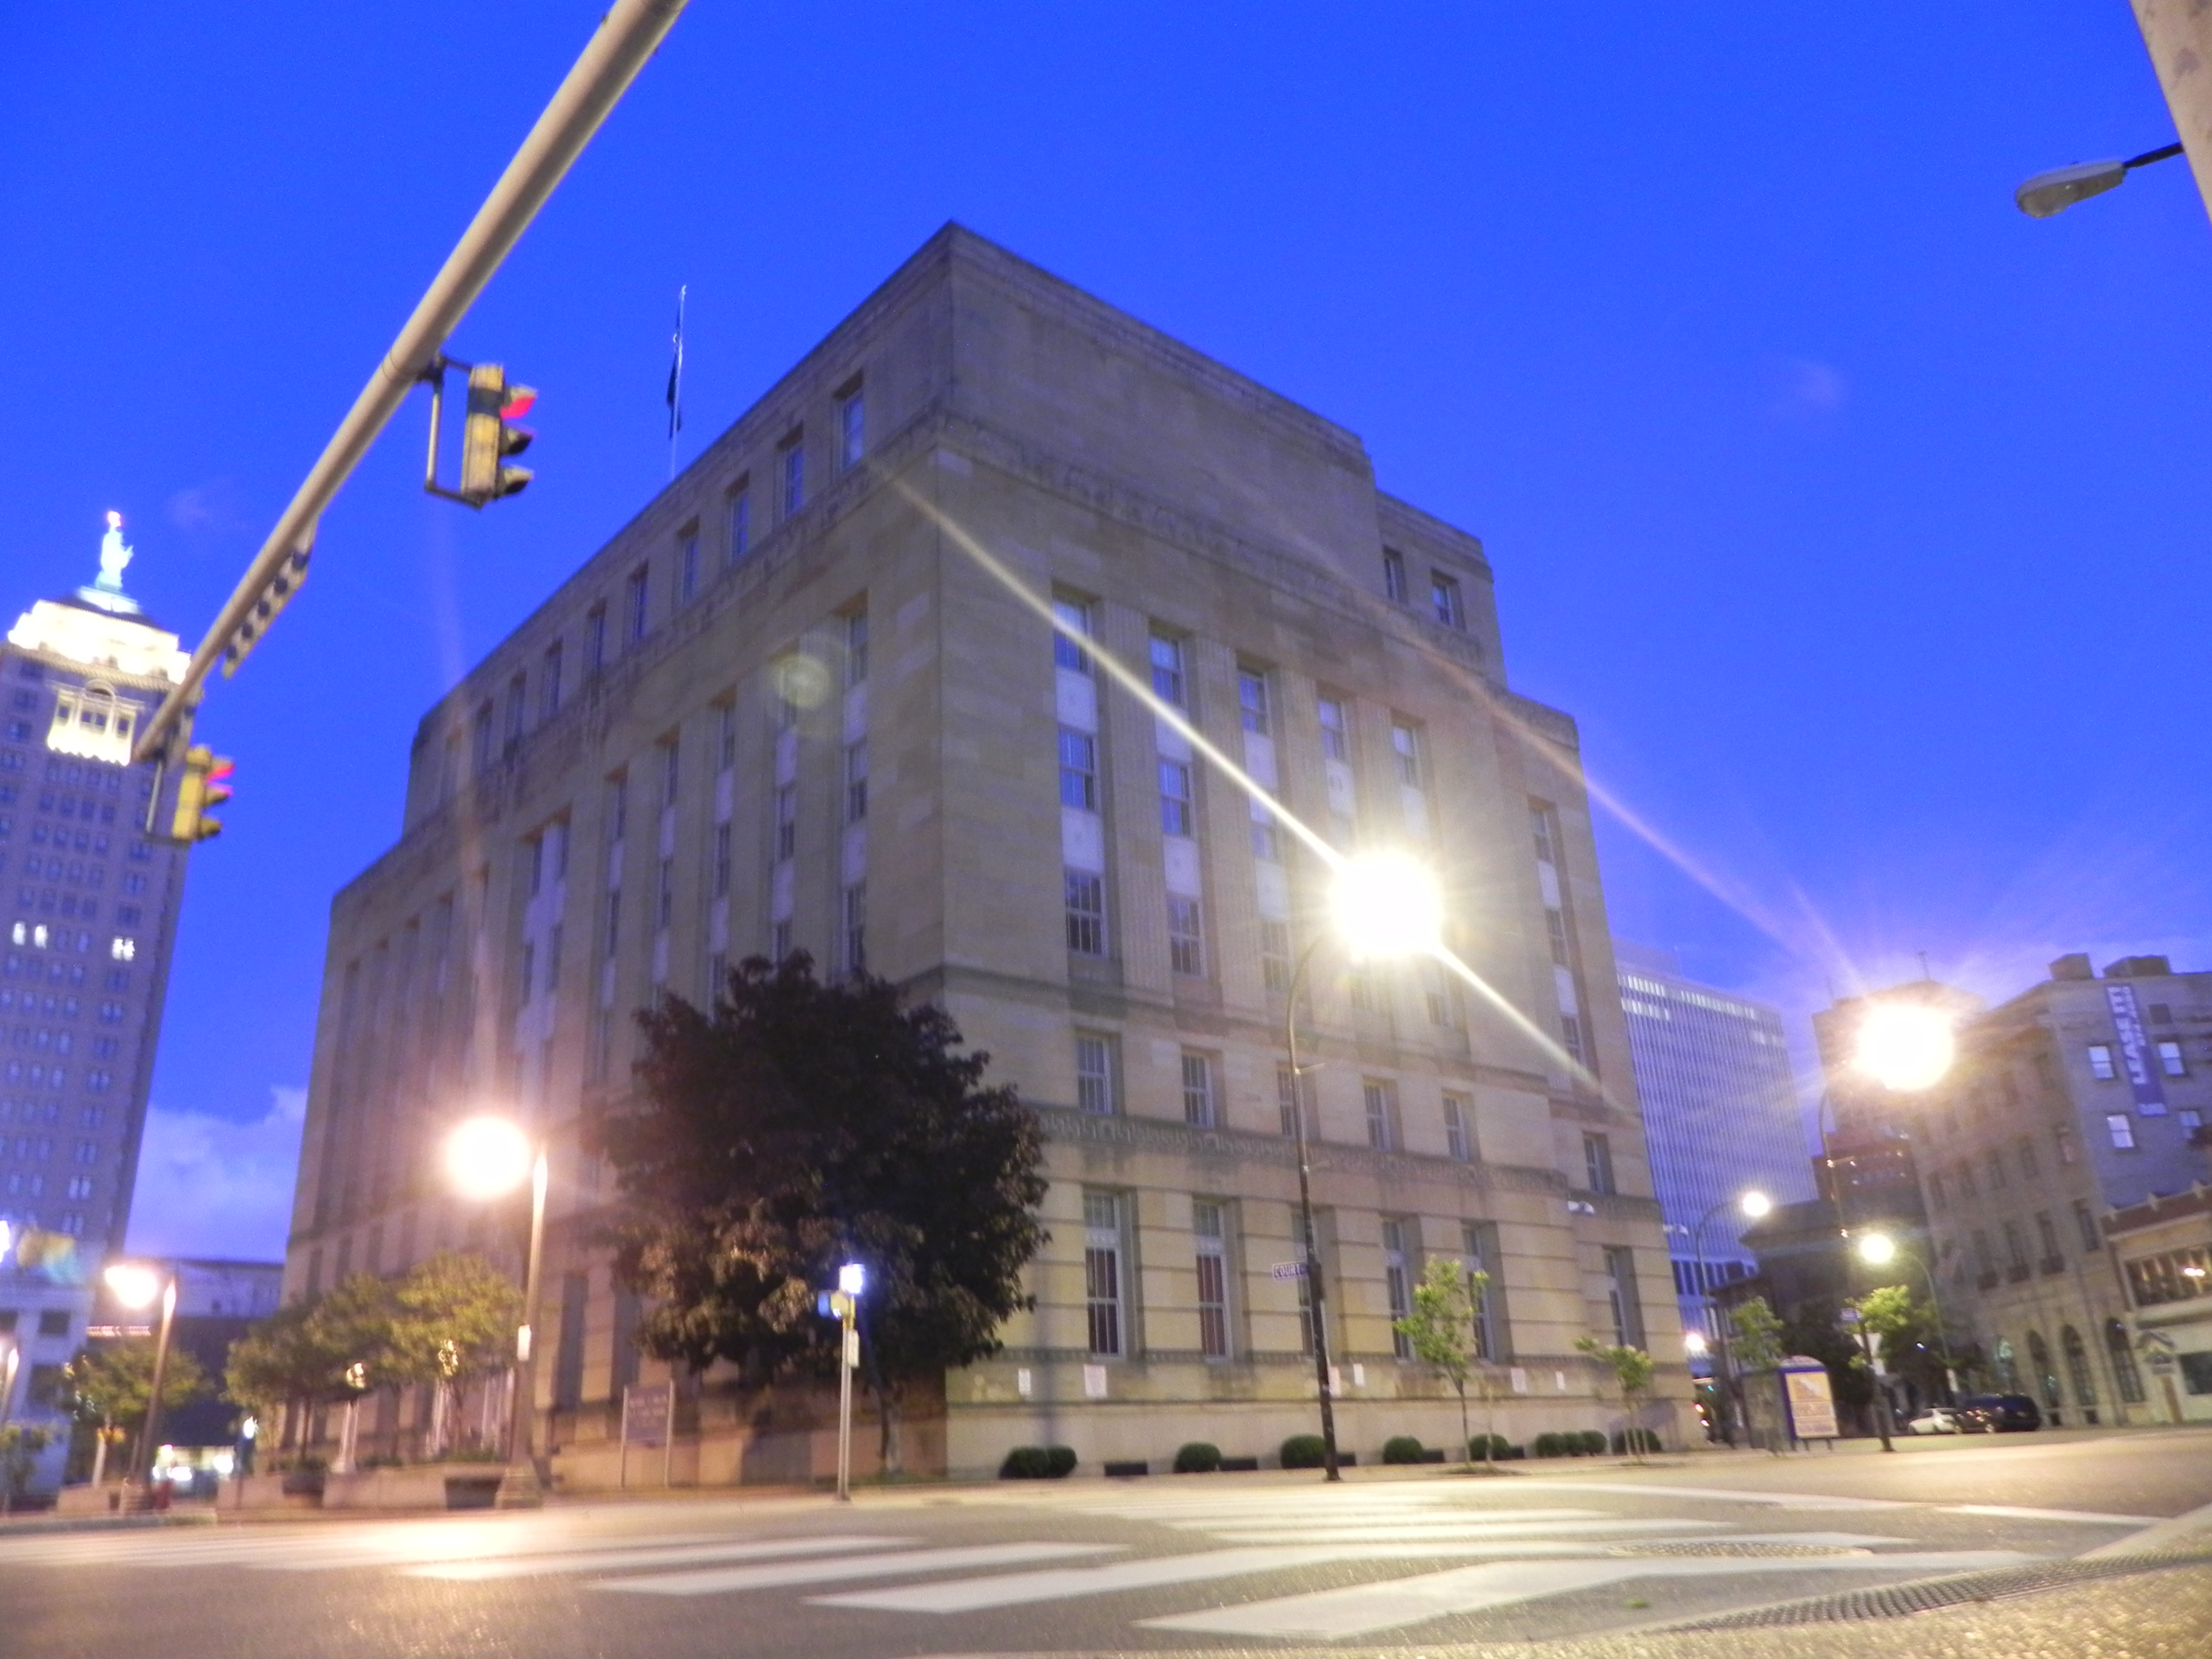 The former United States Federal Courthouse, which is now vacant.